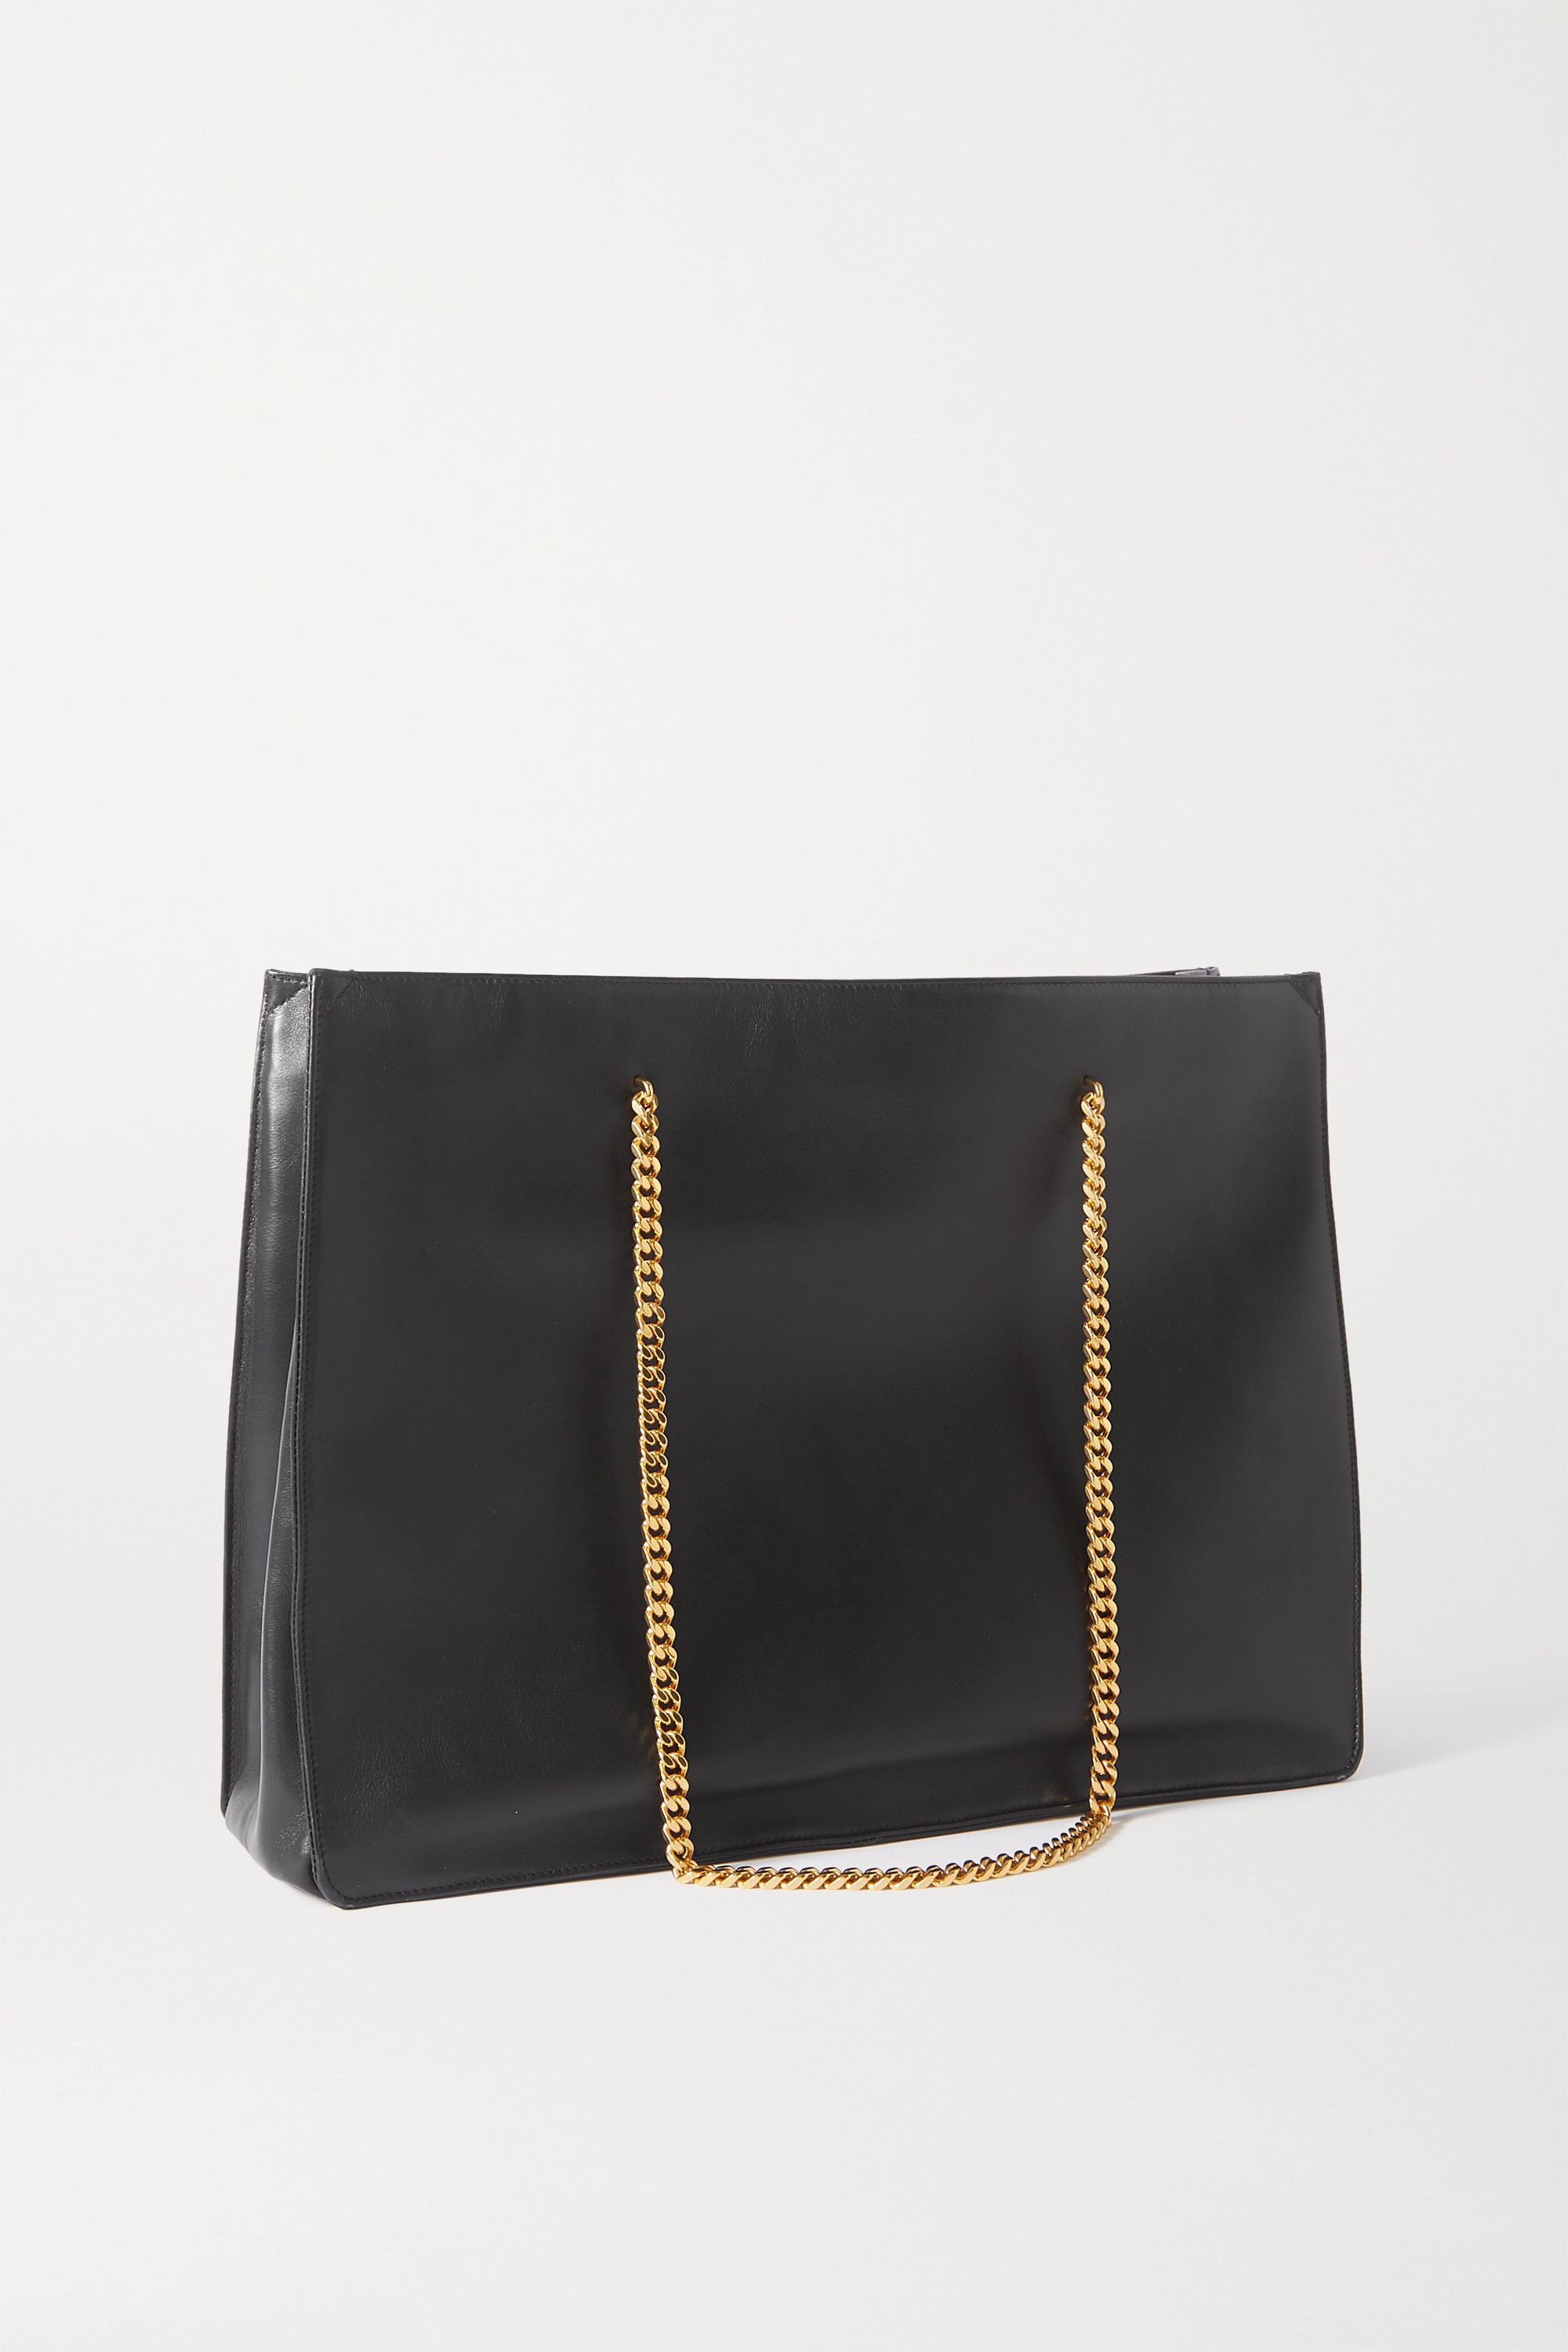 SAINT LAURENT Medium leather tote